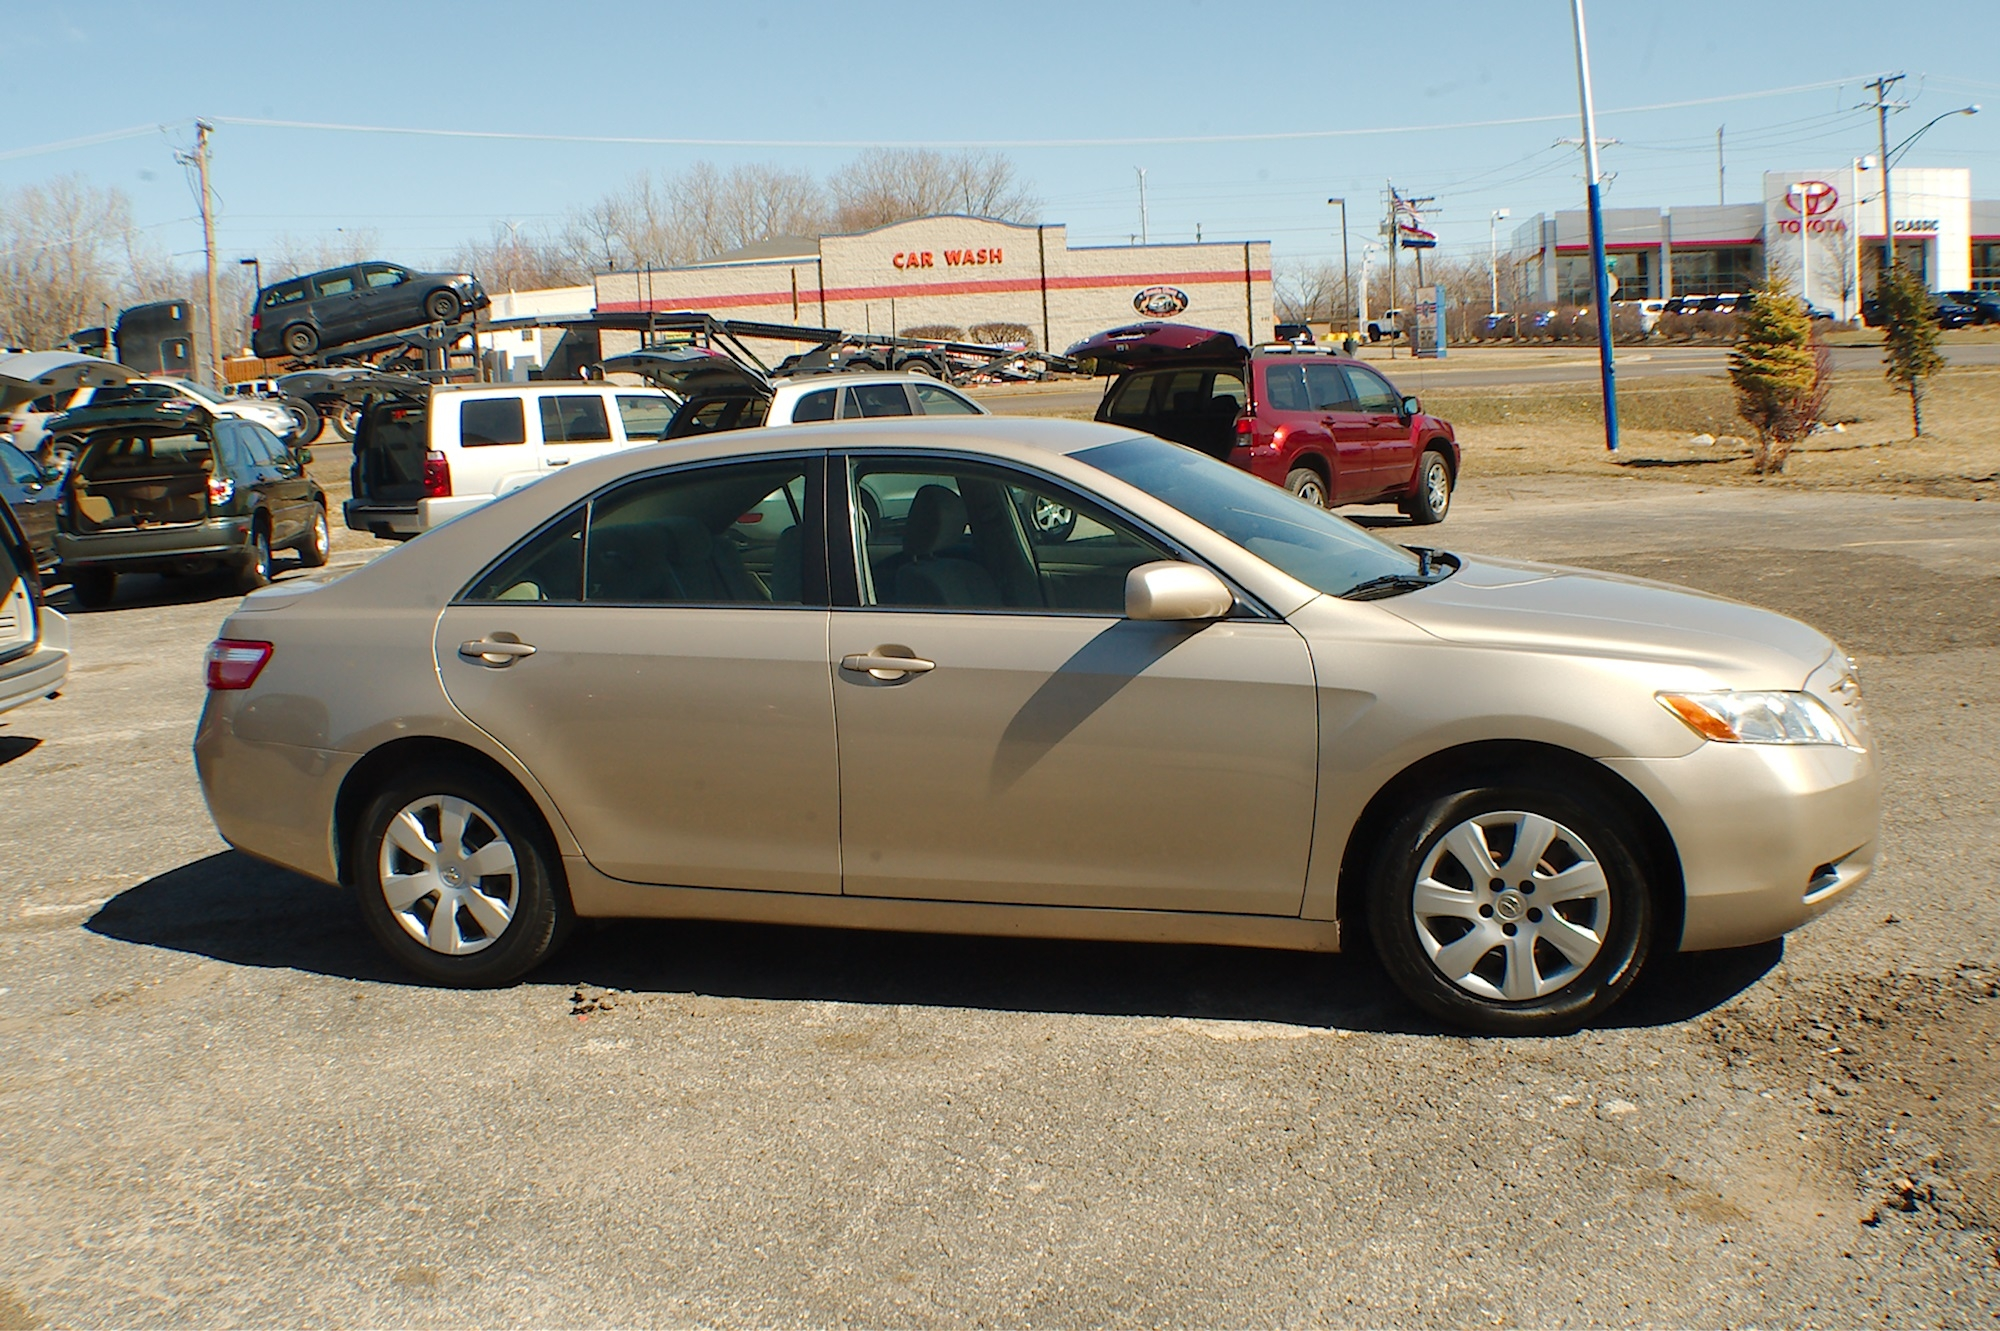 2007 Toyota Camry LE Beige Sedan Used Car Sale Bannockburn Barrington Beach Park